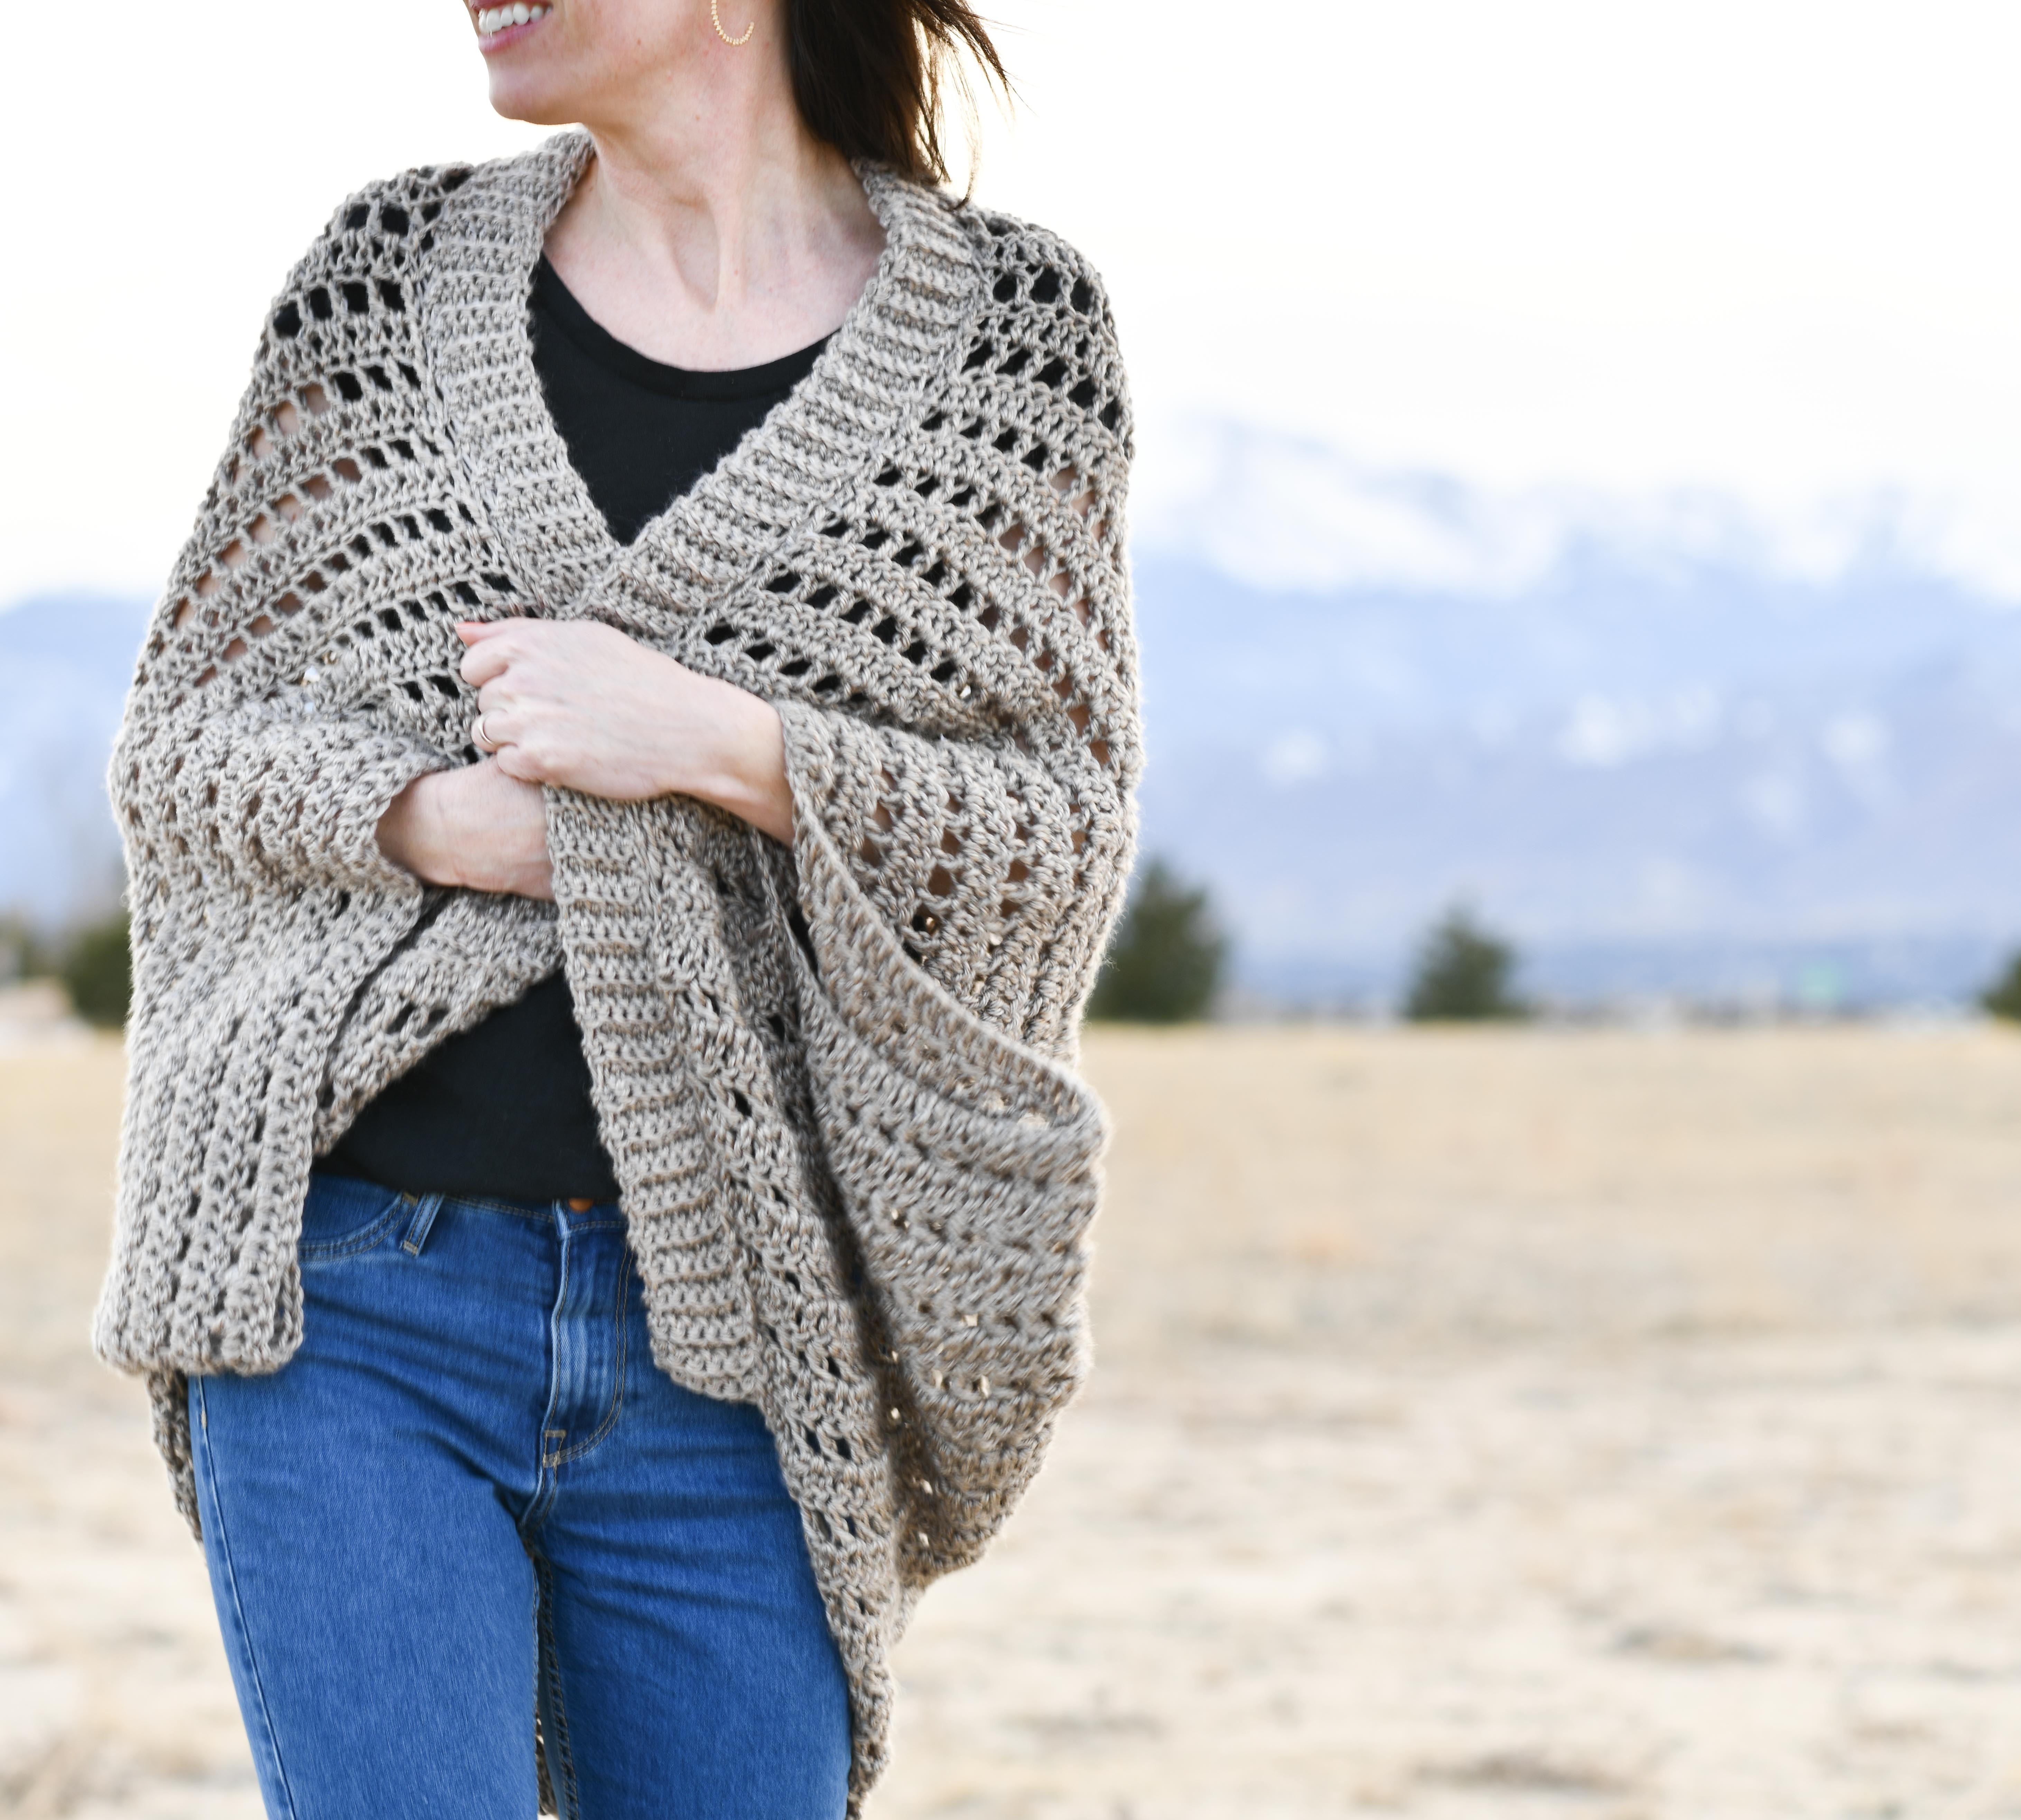 Summer Shrug Knitting Pattern How To Crochet An Easy Summer Shrug Mama In A Stitch